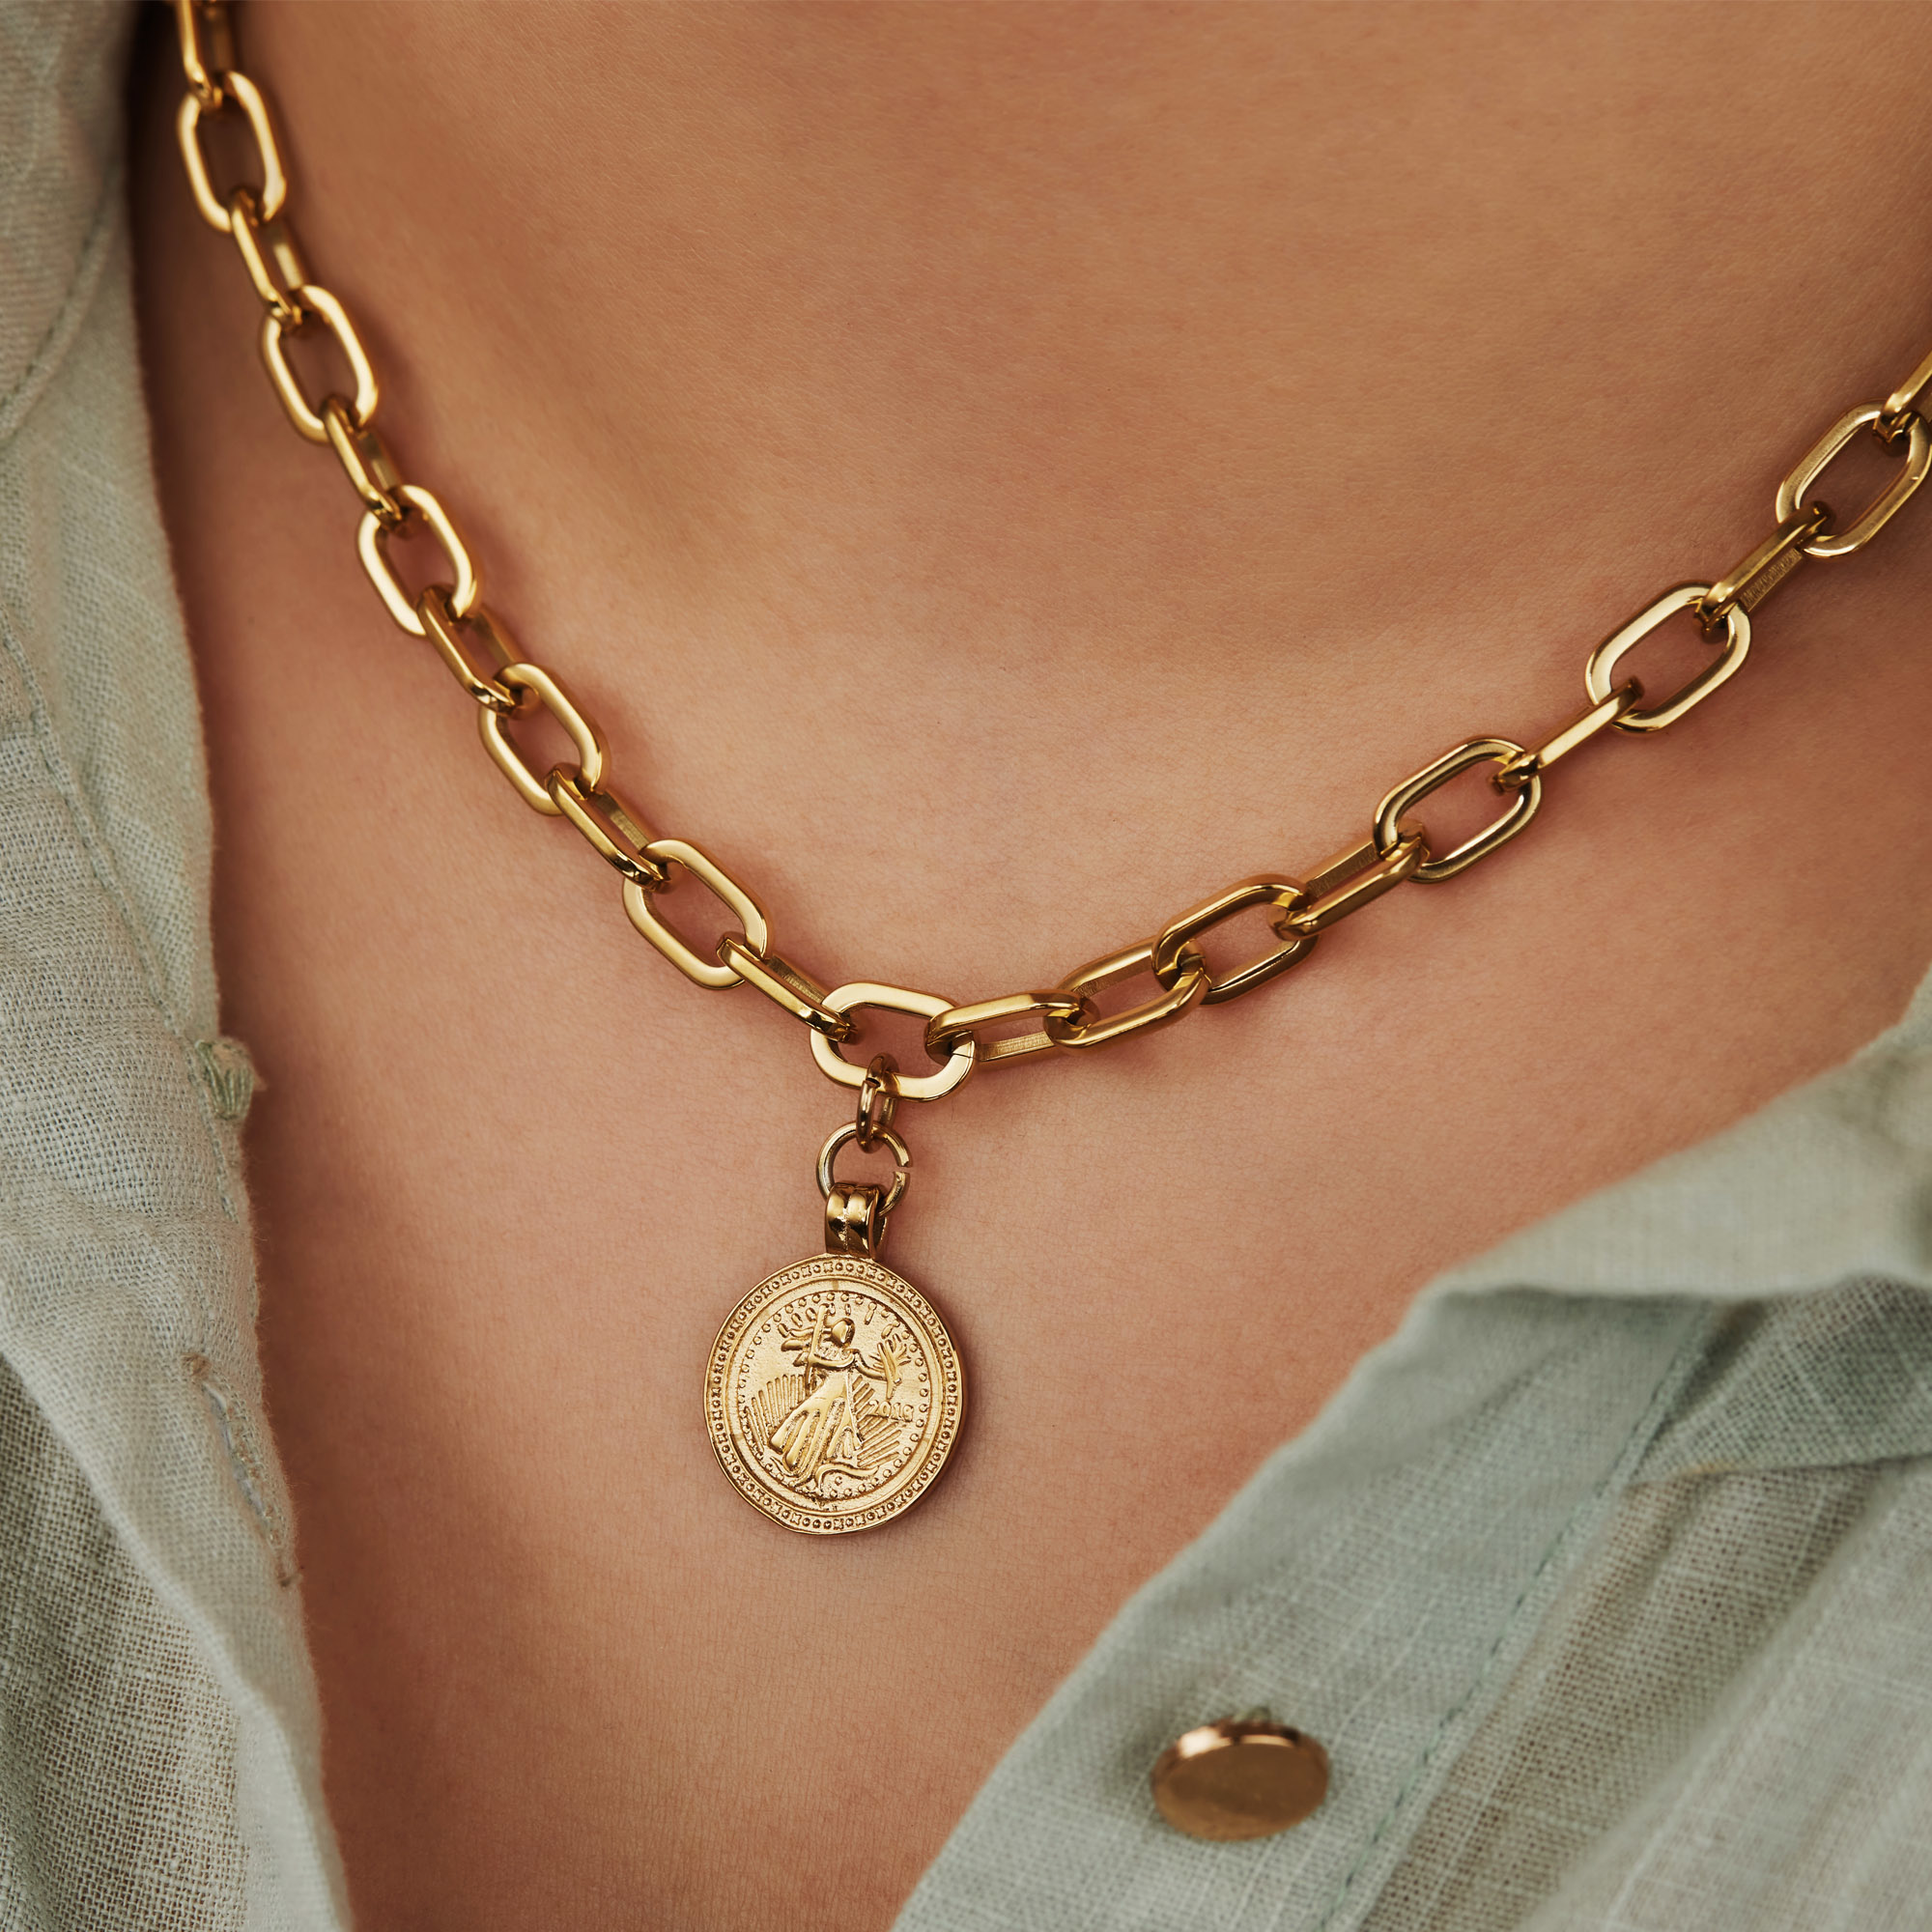 May Sparkle Beach Girl Amber gold colored necklace